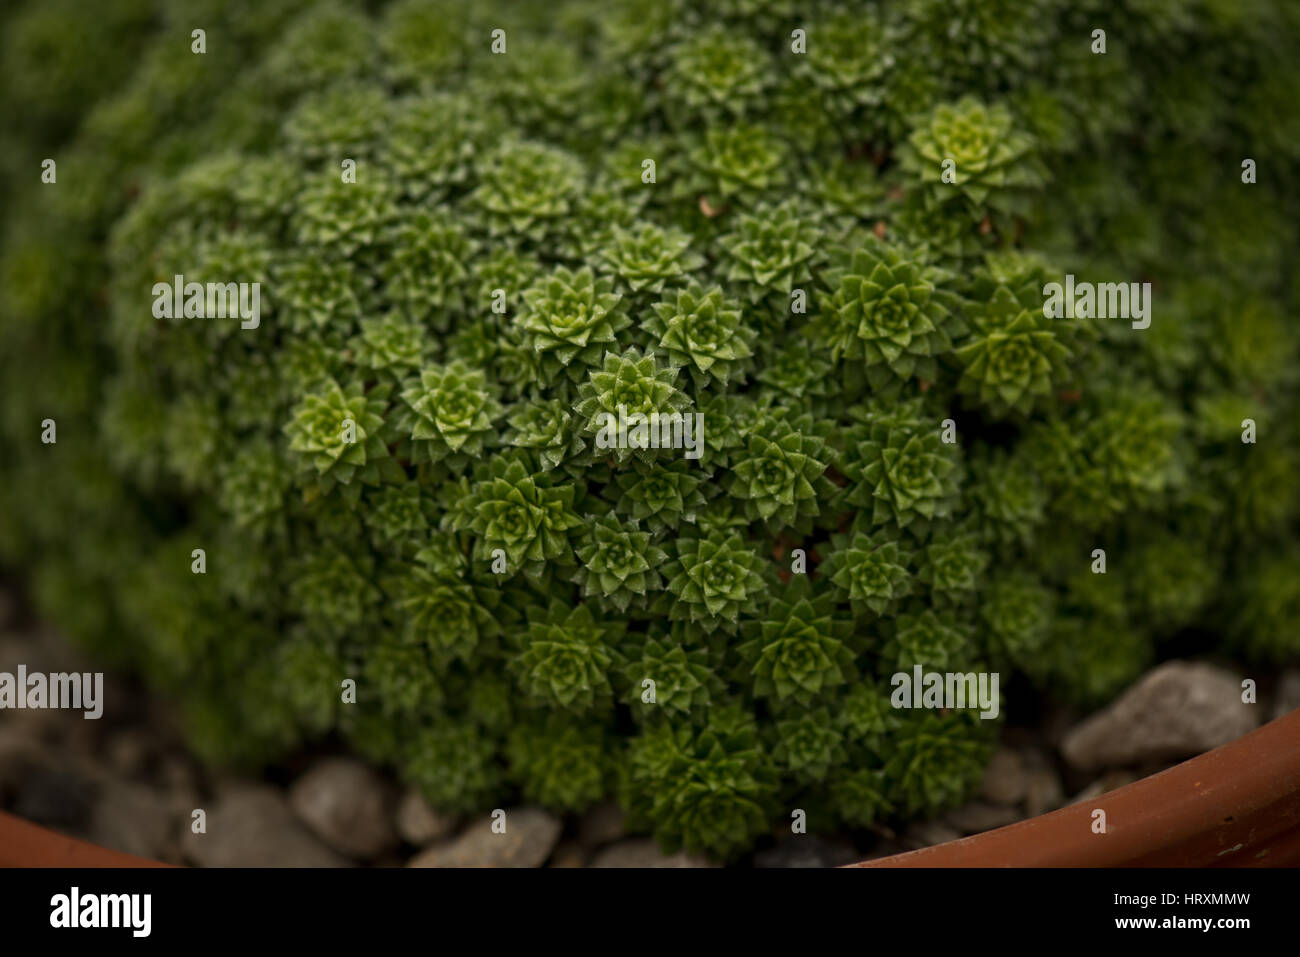 Fractal plant growth - Stock Image